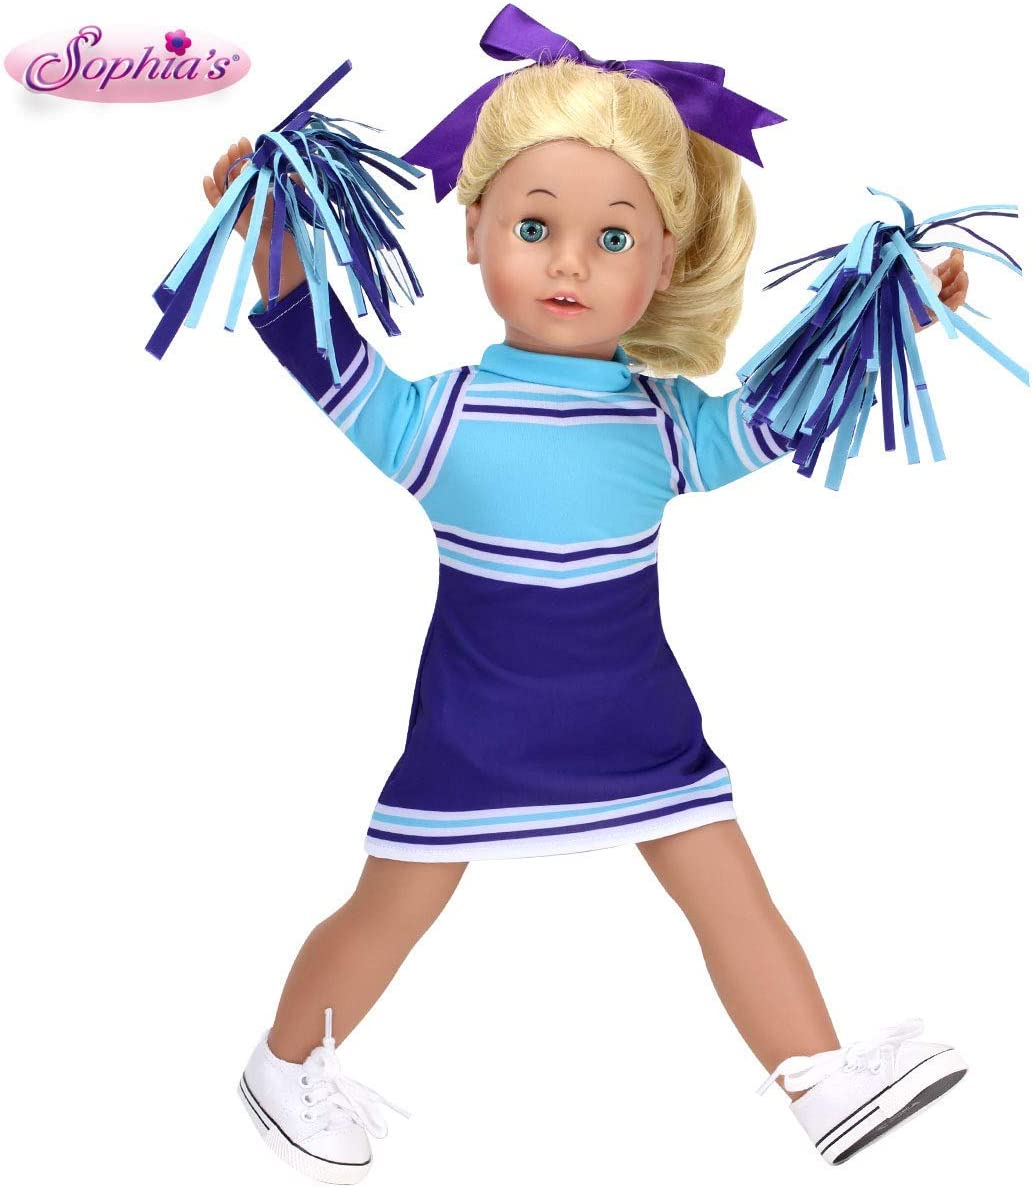 Challenge the lowest price Sophia's Columbus Mall Doll Clothes Cheerleading Set: Includes Screen Pur Silk